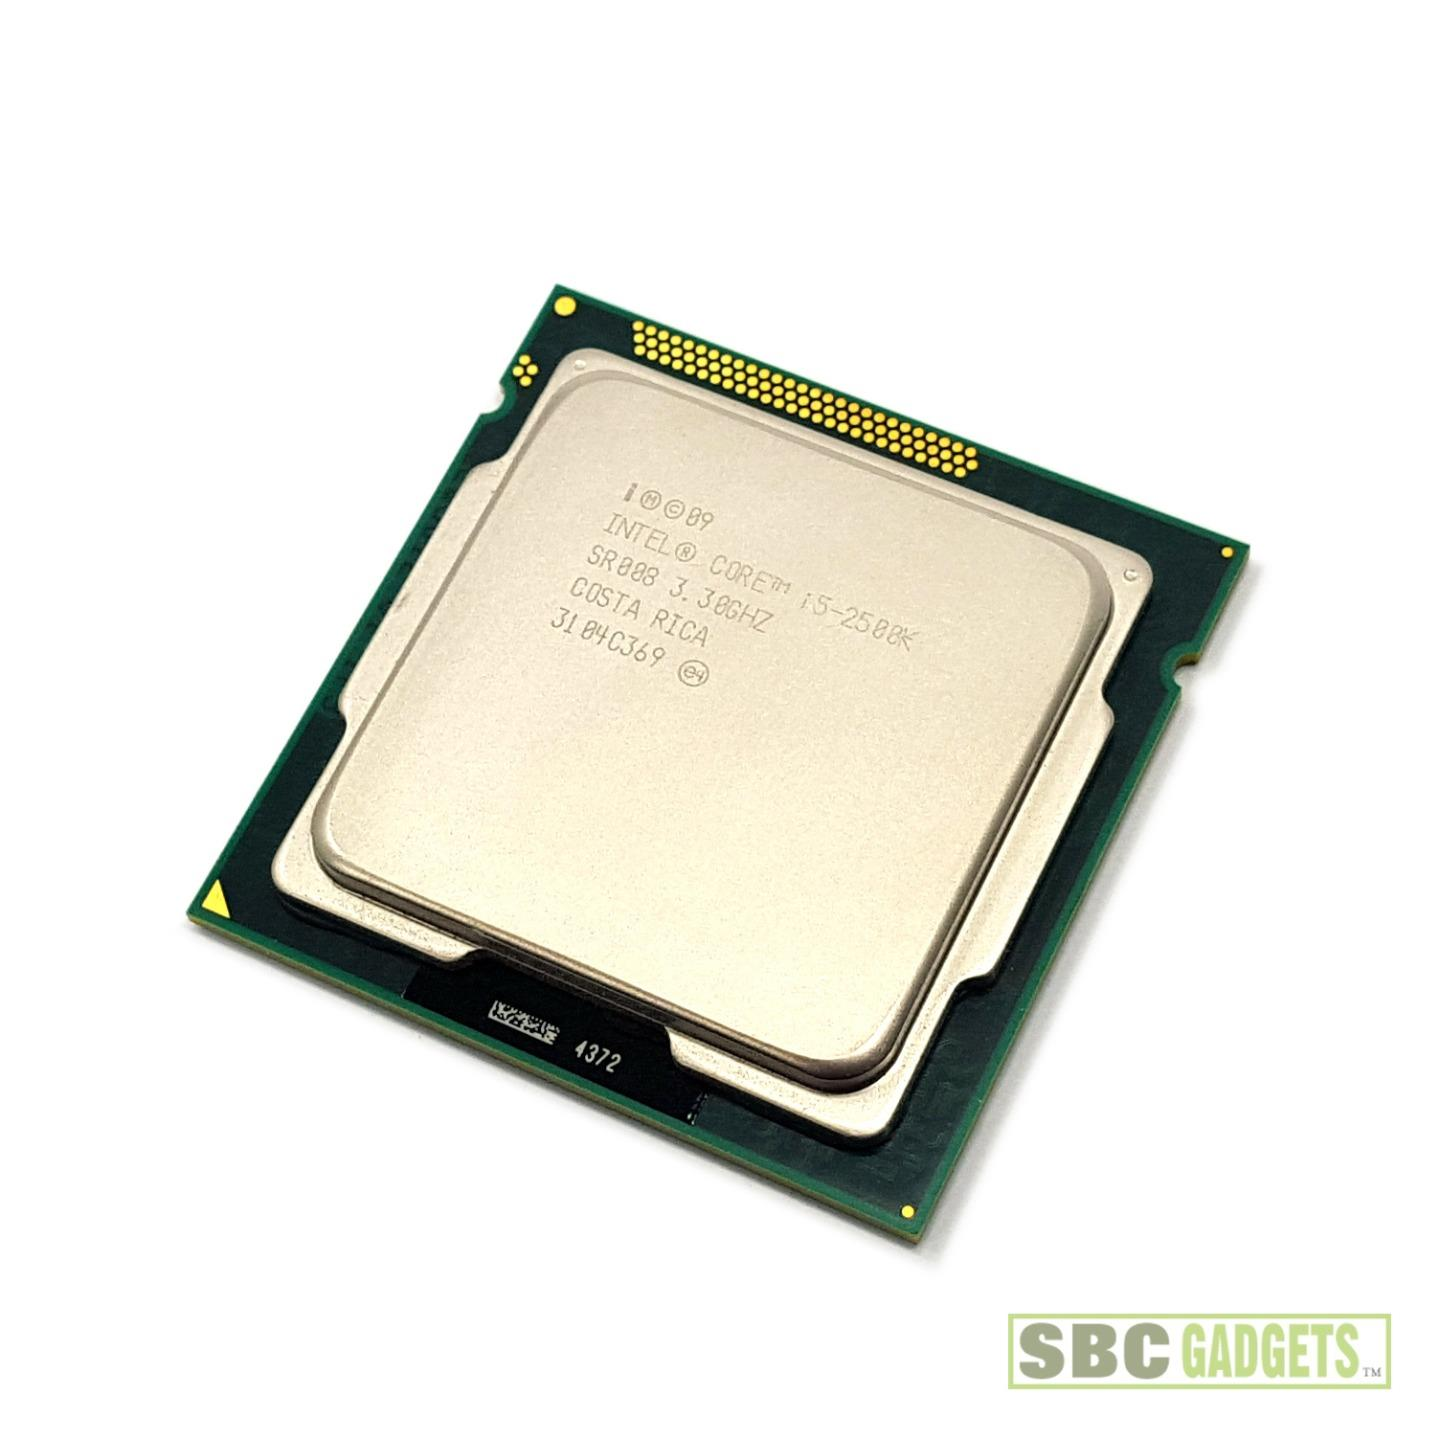 Intel Core i5-2500K 3.3GHz Quad-Core Unlocked CPU Processor (LGA 1155, 6MB, 95W) | eBay